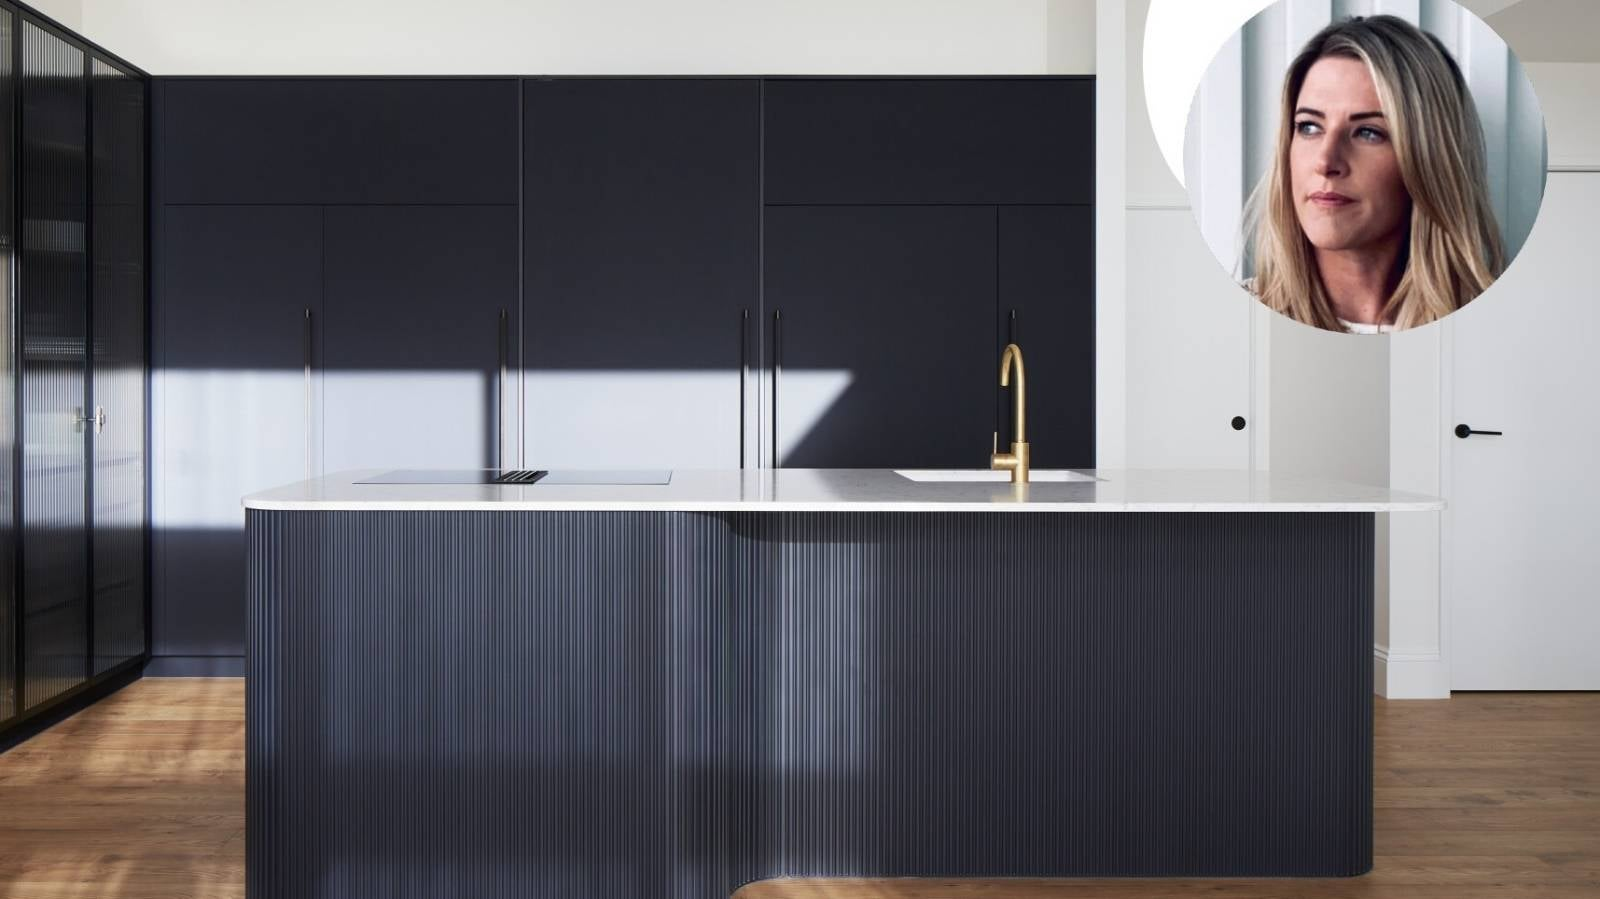 Kitchen of the Week: In the navy